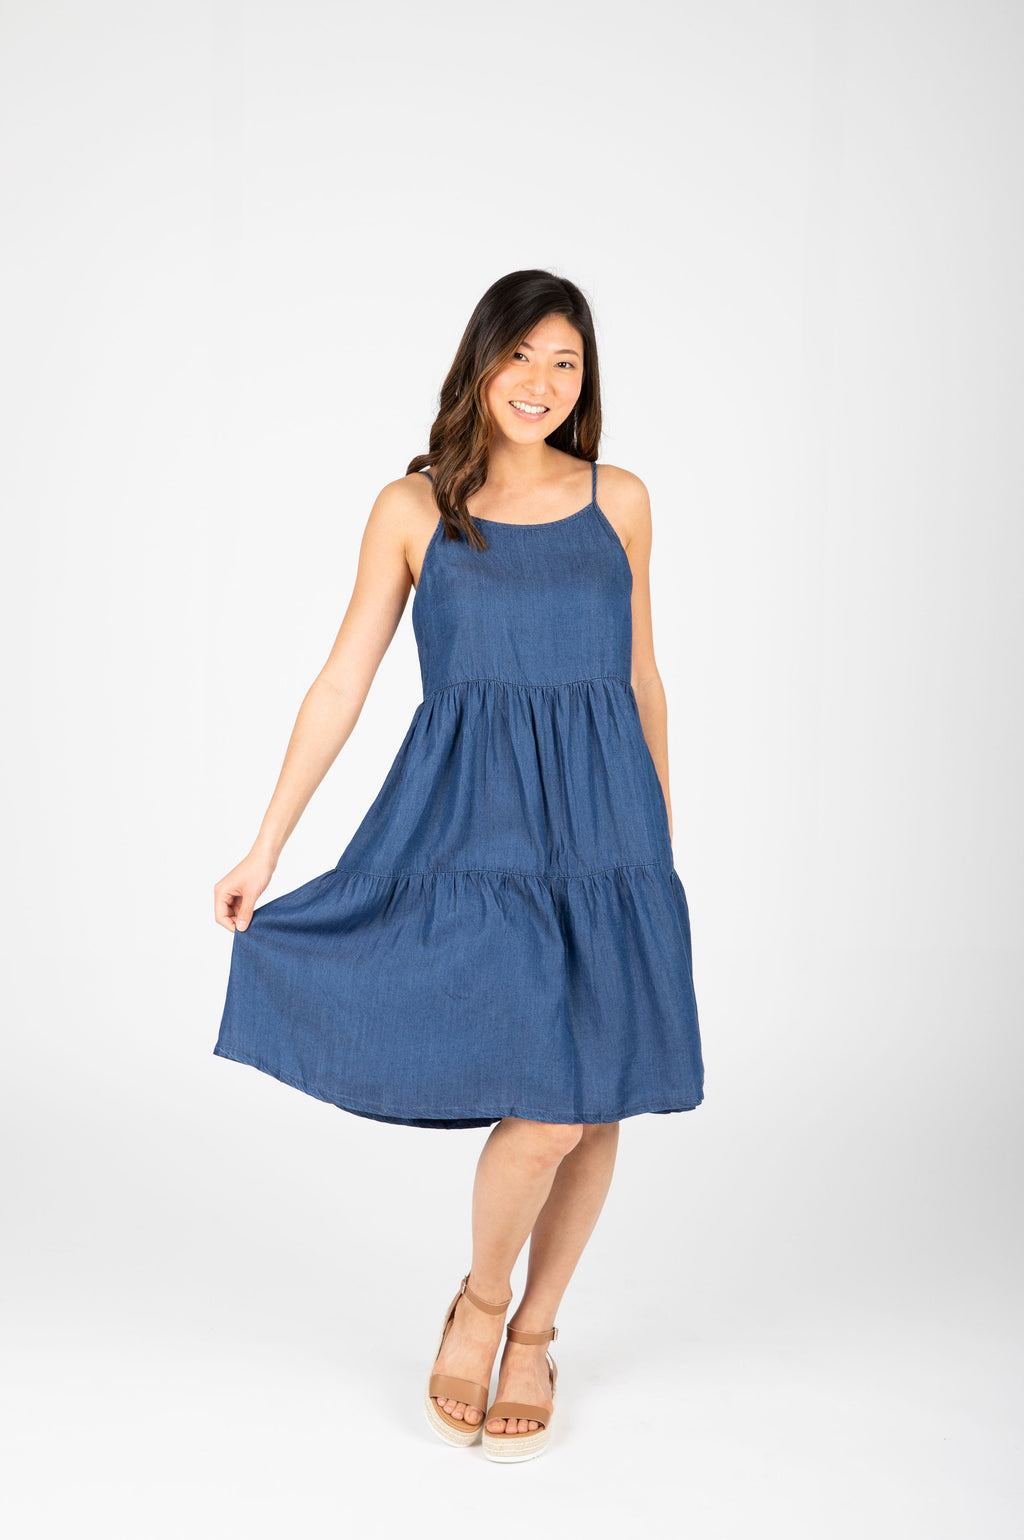 The Teagan Denim Tank Dress in Chambray